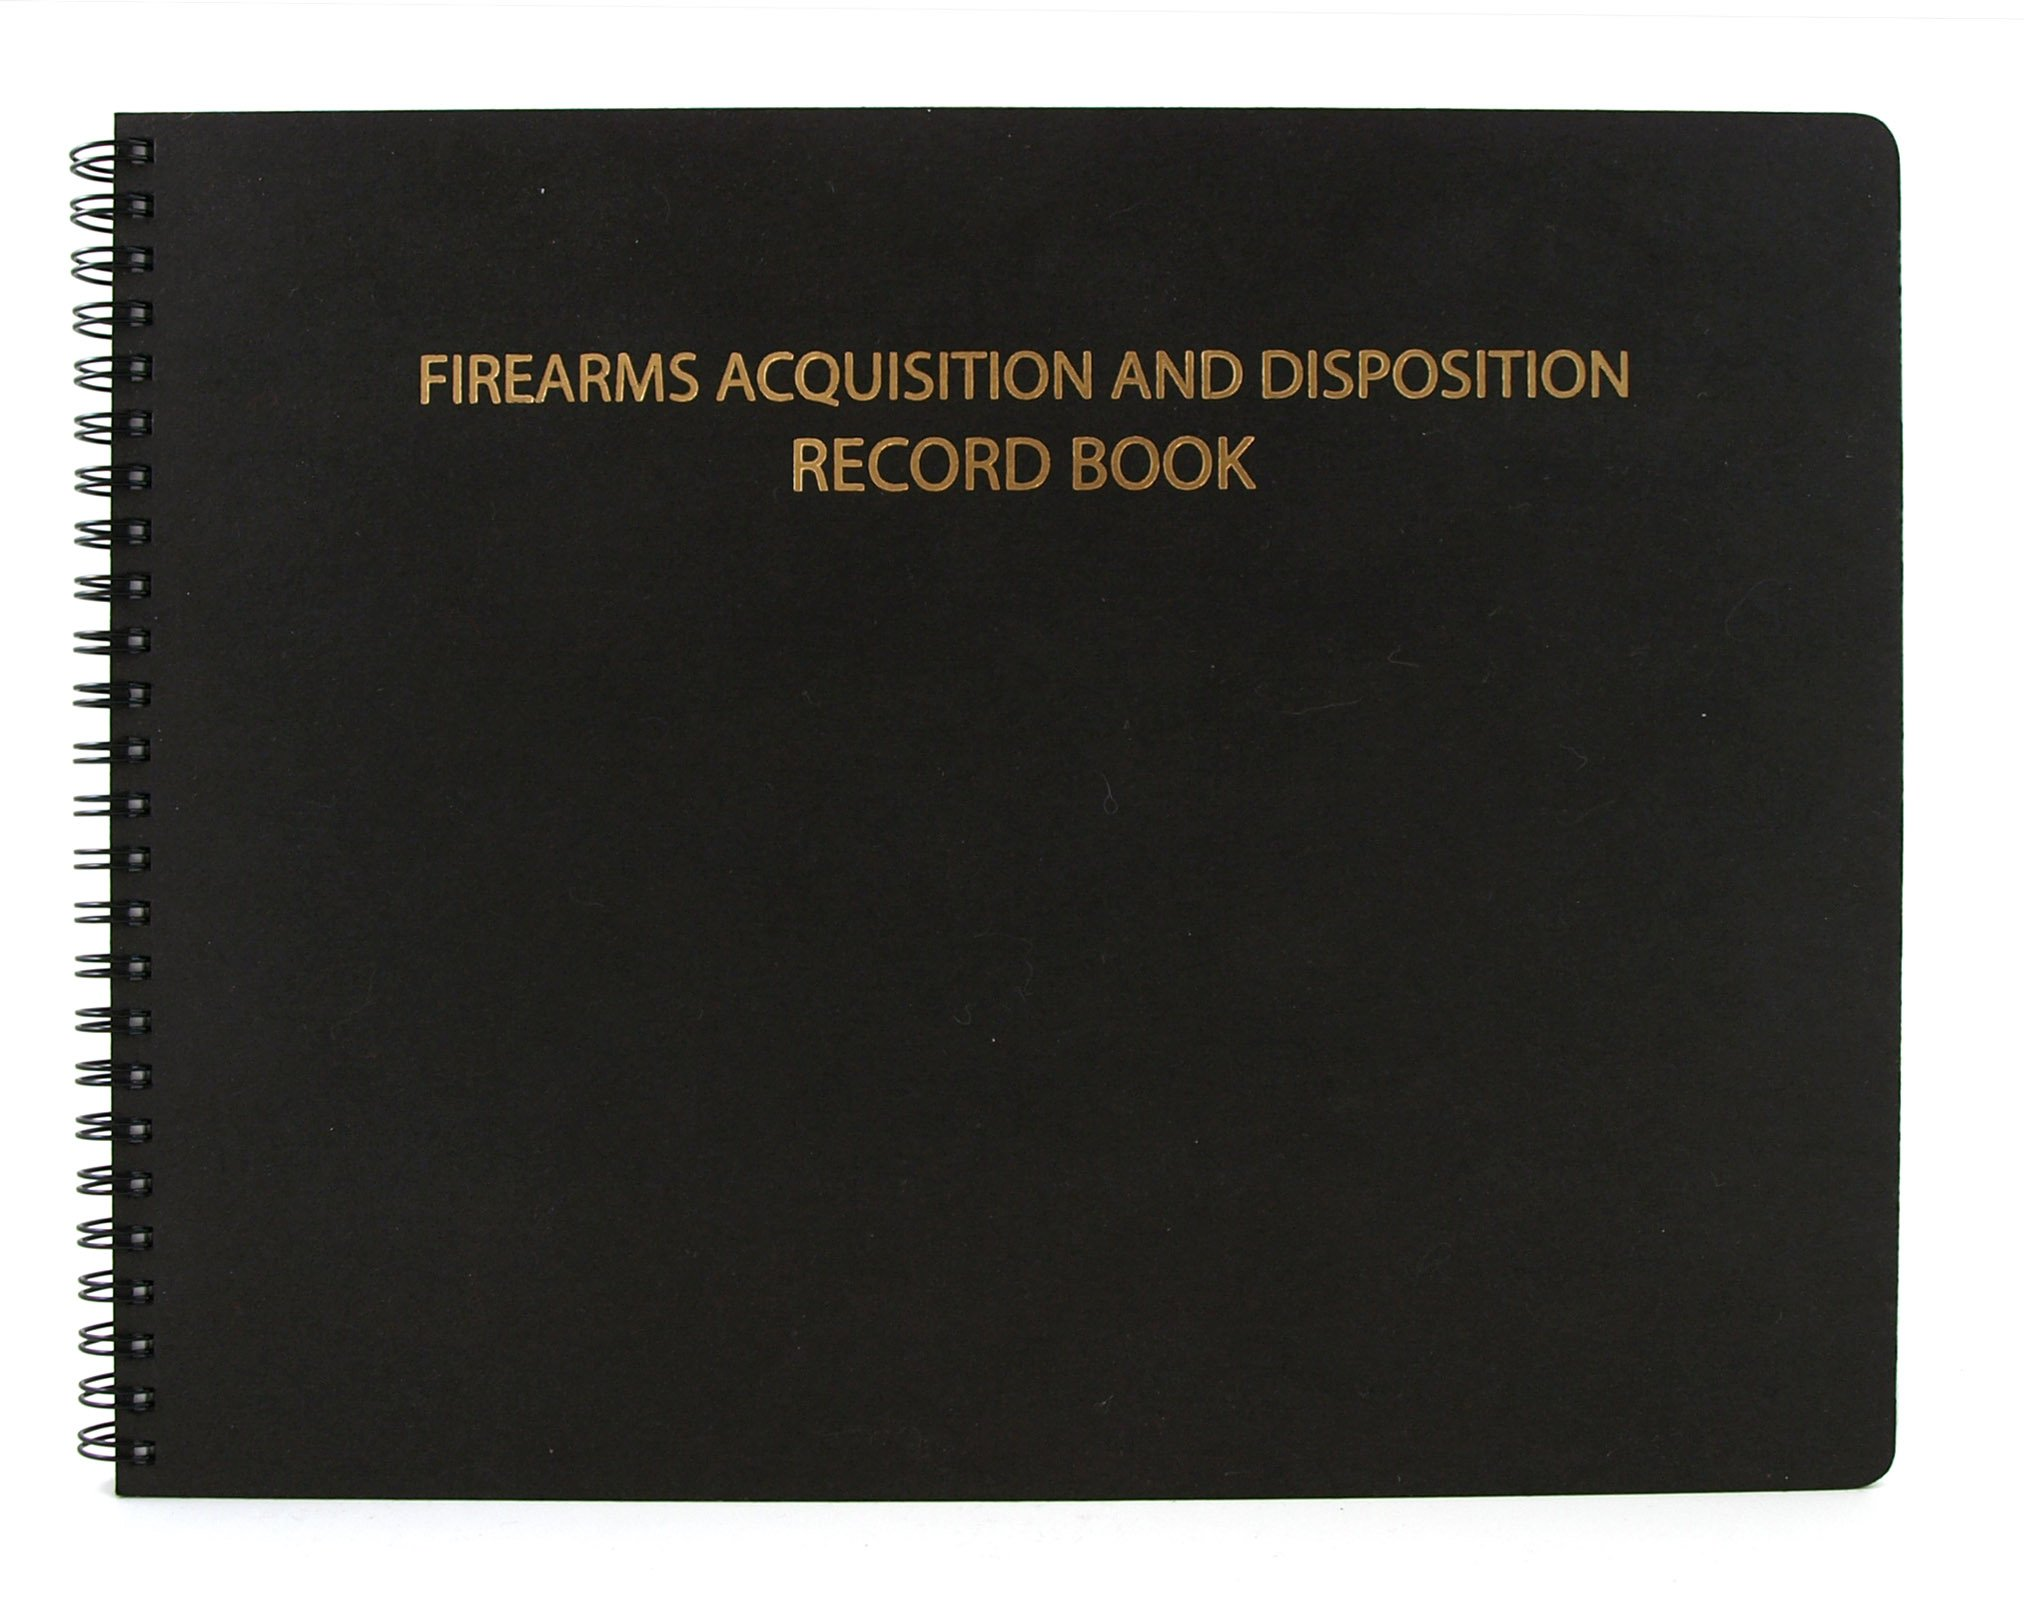 BookFactory Gun Log Book / Firearms Acquisition & Disposition Record Book - 100 Pages, Black-TransLux Cover - Wire-O, 11'' x 8 1/2'' (LOG-100-GUN-W01-T35)